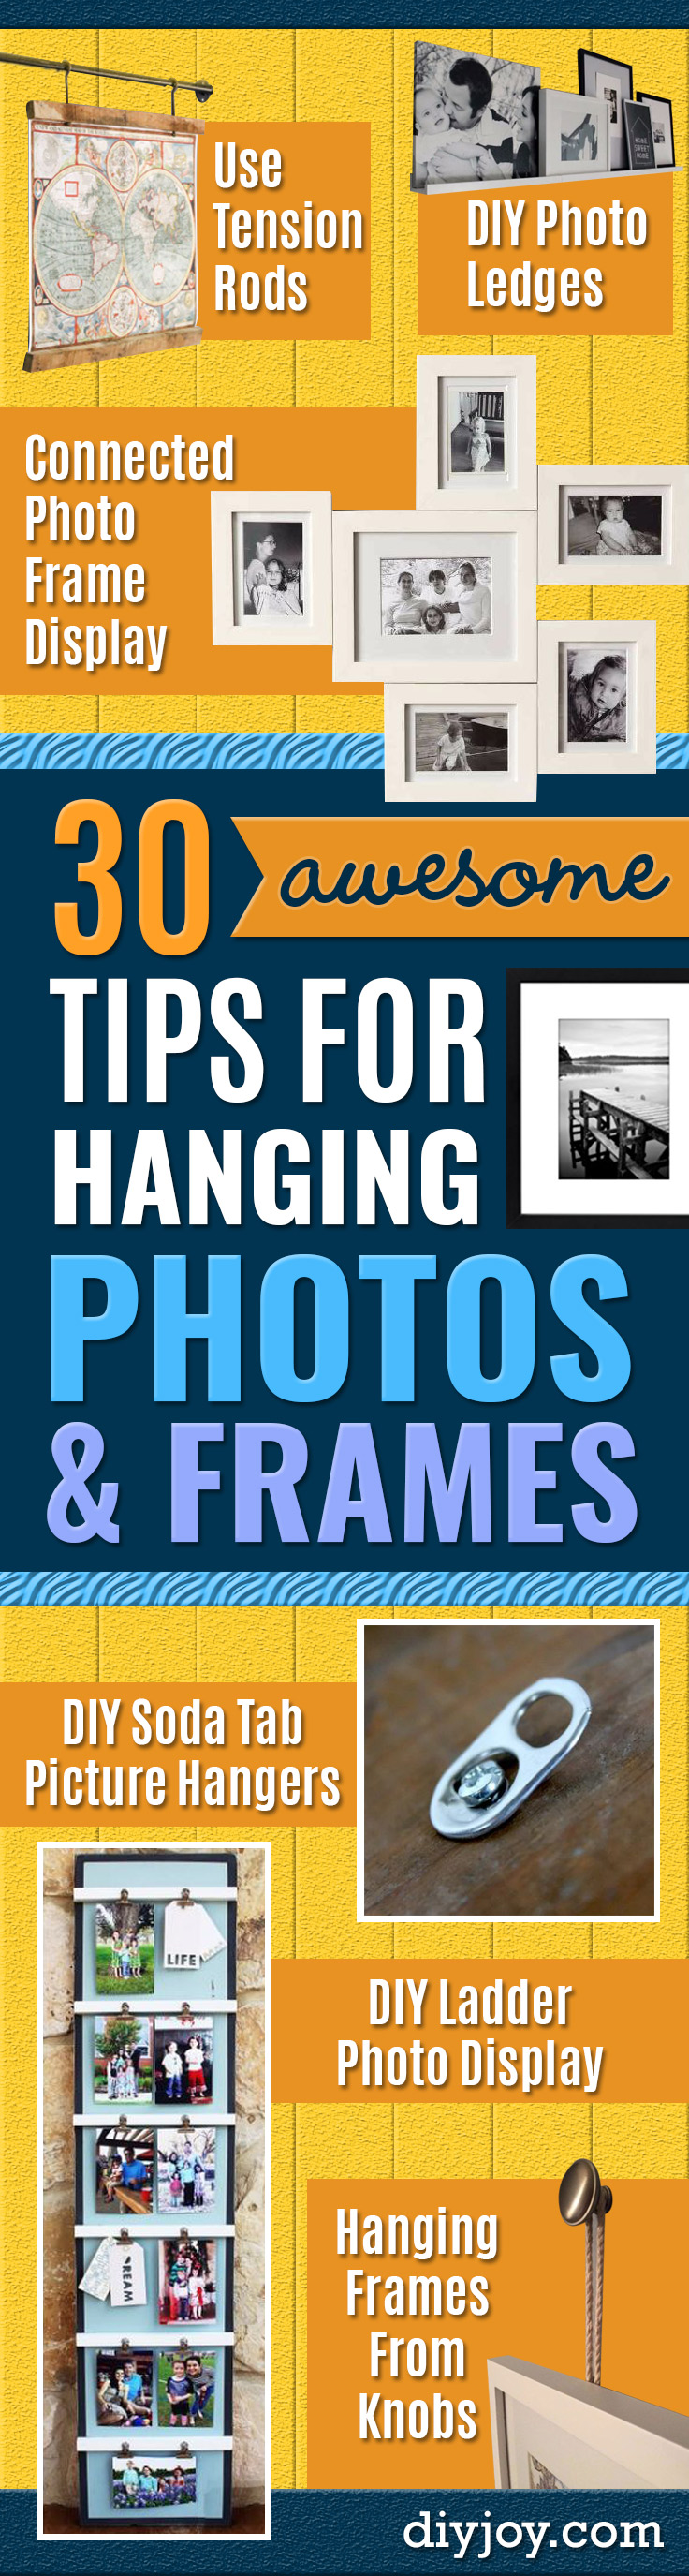 Tips and Tricks for Hanging Photos and Frames - DIY Yarn Clothespin Frame - Step By Step Tutorials and Easy DIY Home Decor Projects for Decorating Walls - Cool Wall Art Ideas for Bedroom, Living Room, Gallery Walls - Creative and Cheap Ideas for Displaying Photos and Prints - DIY Projects and Crafts by DIY JOY